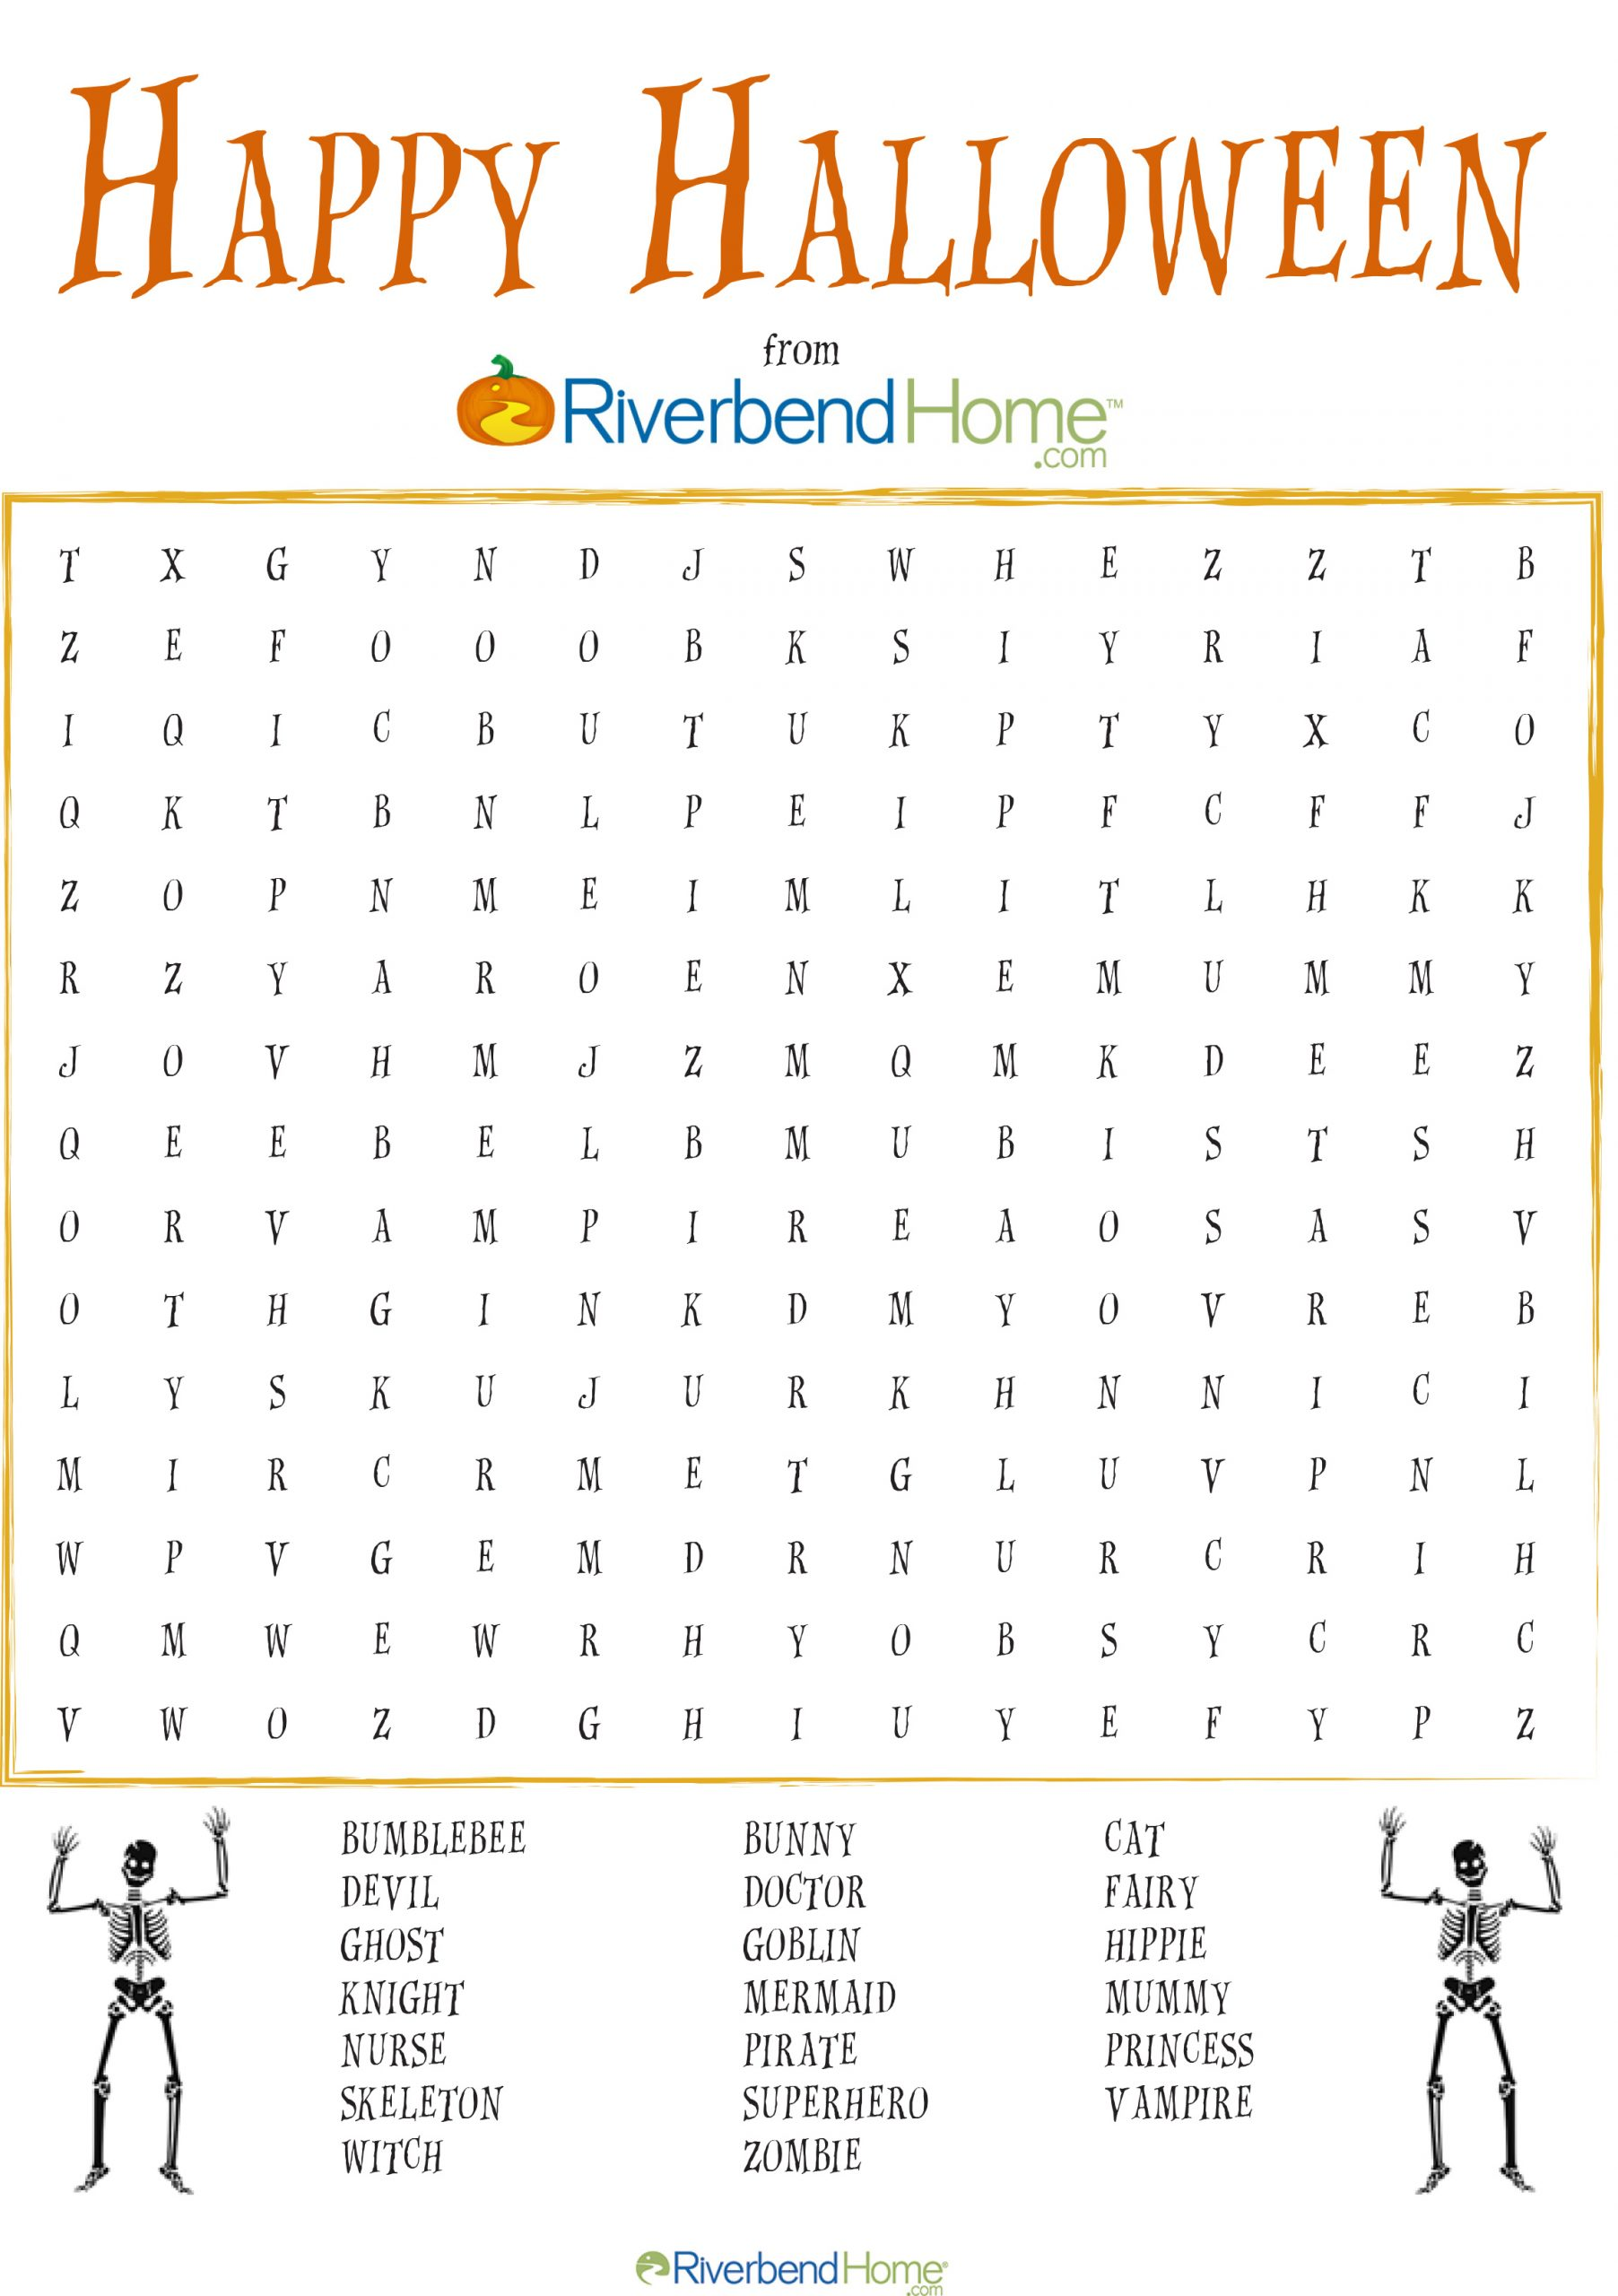 Free Printable Halloween Word Search Puzzle   Riverbend Home